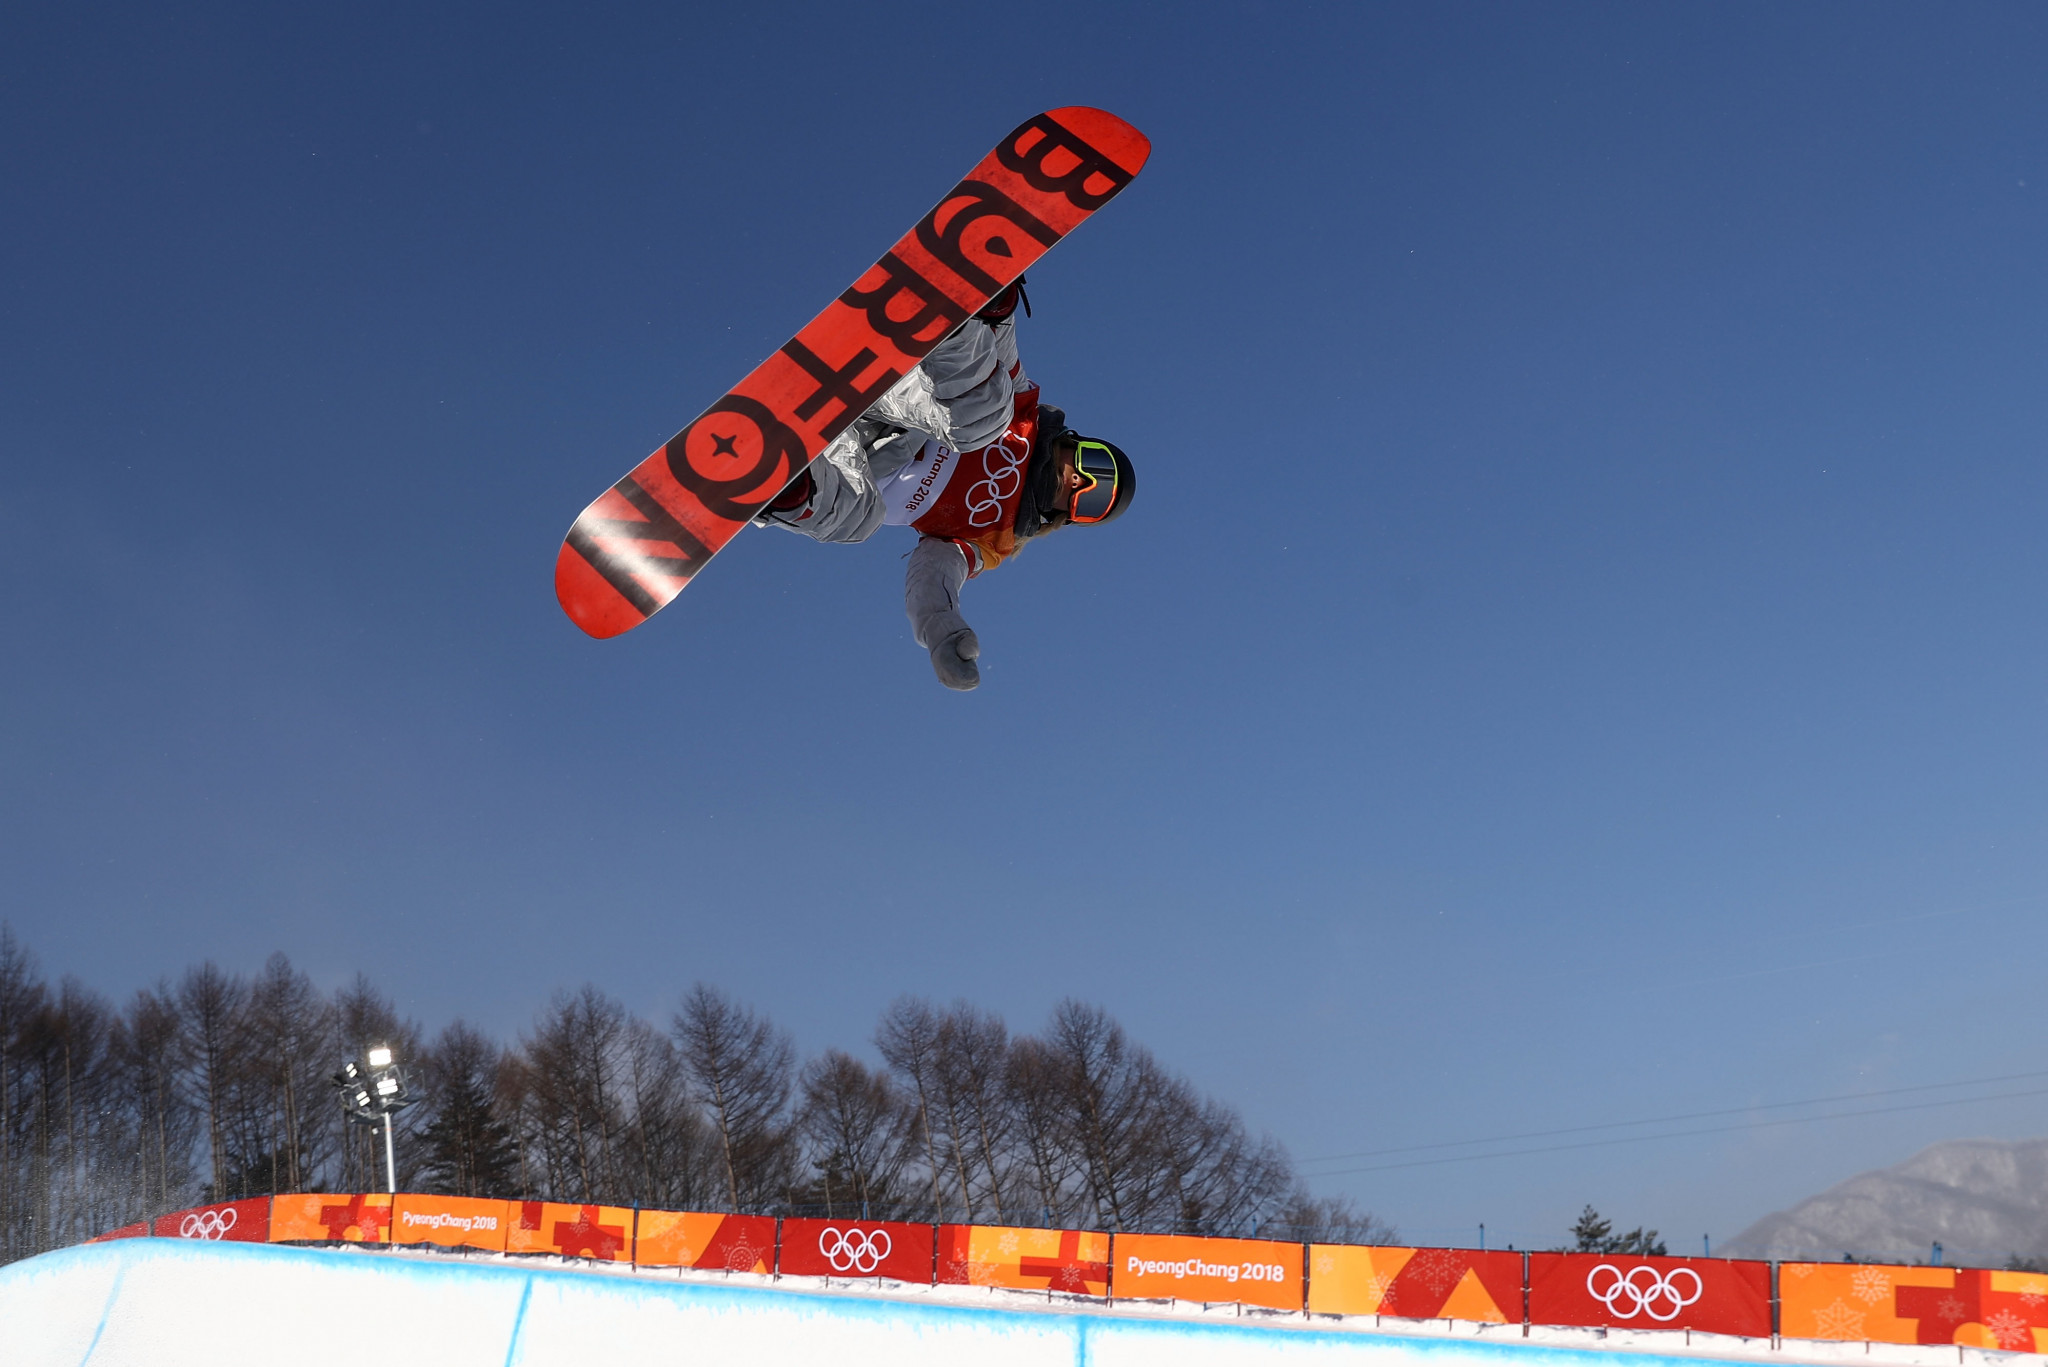 Chloe Kim dominated the women's halfpipe final ©Getty Images